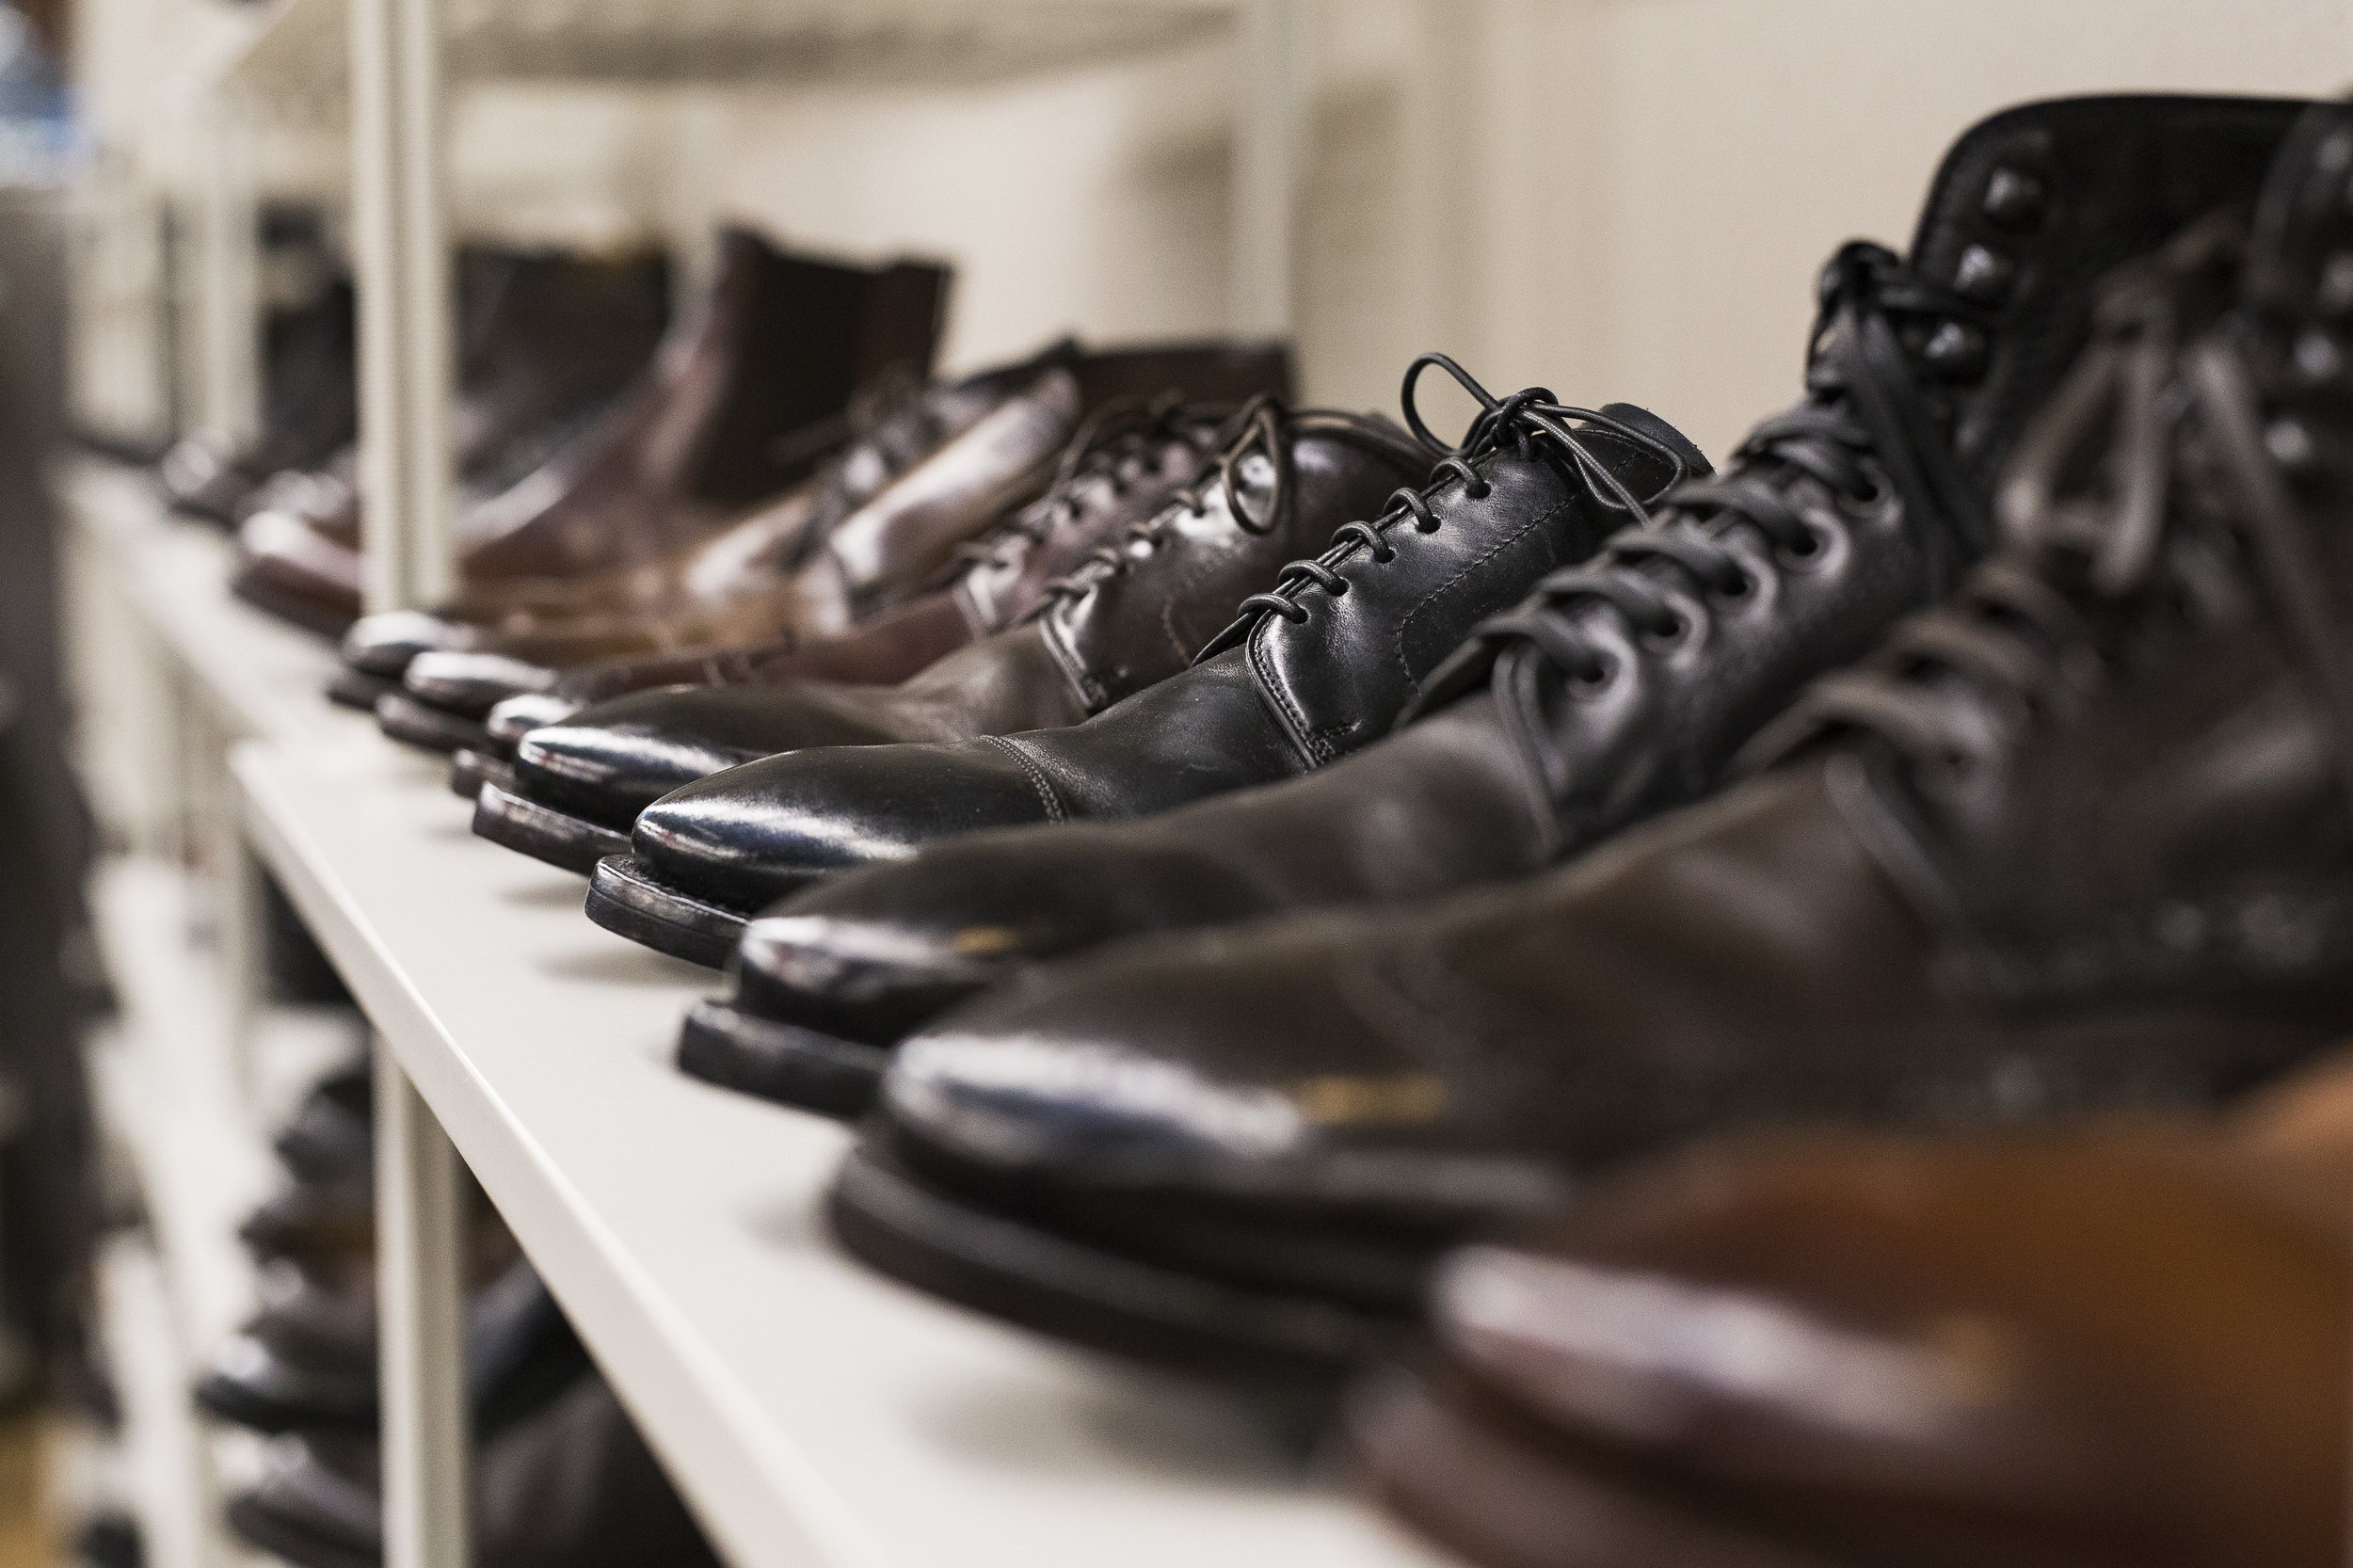 Officine Creative is an established Italian leather brand that uses Authentic Modern Artefacts as its unique expression of Italian creativity in men an women's footwear.